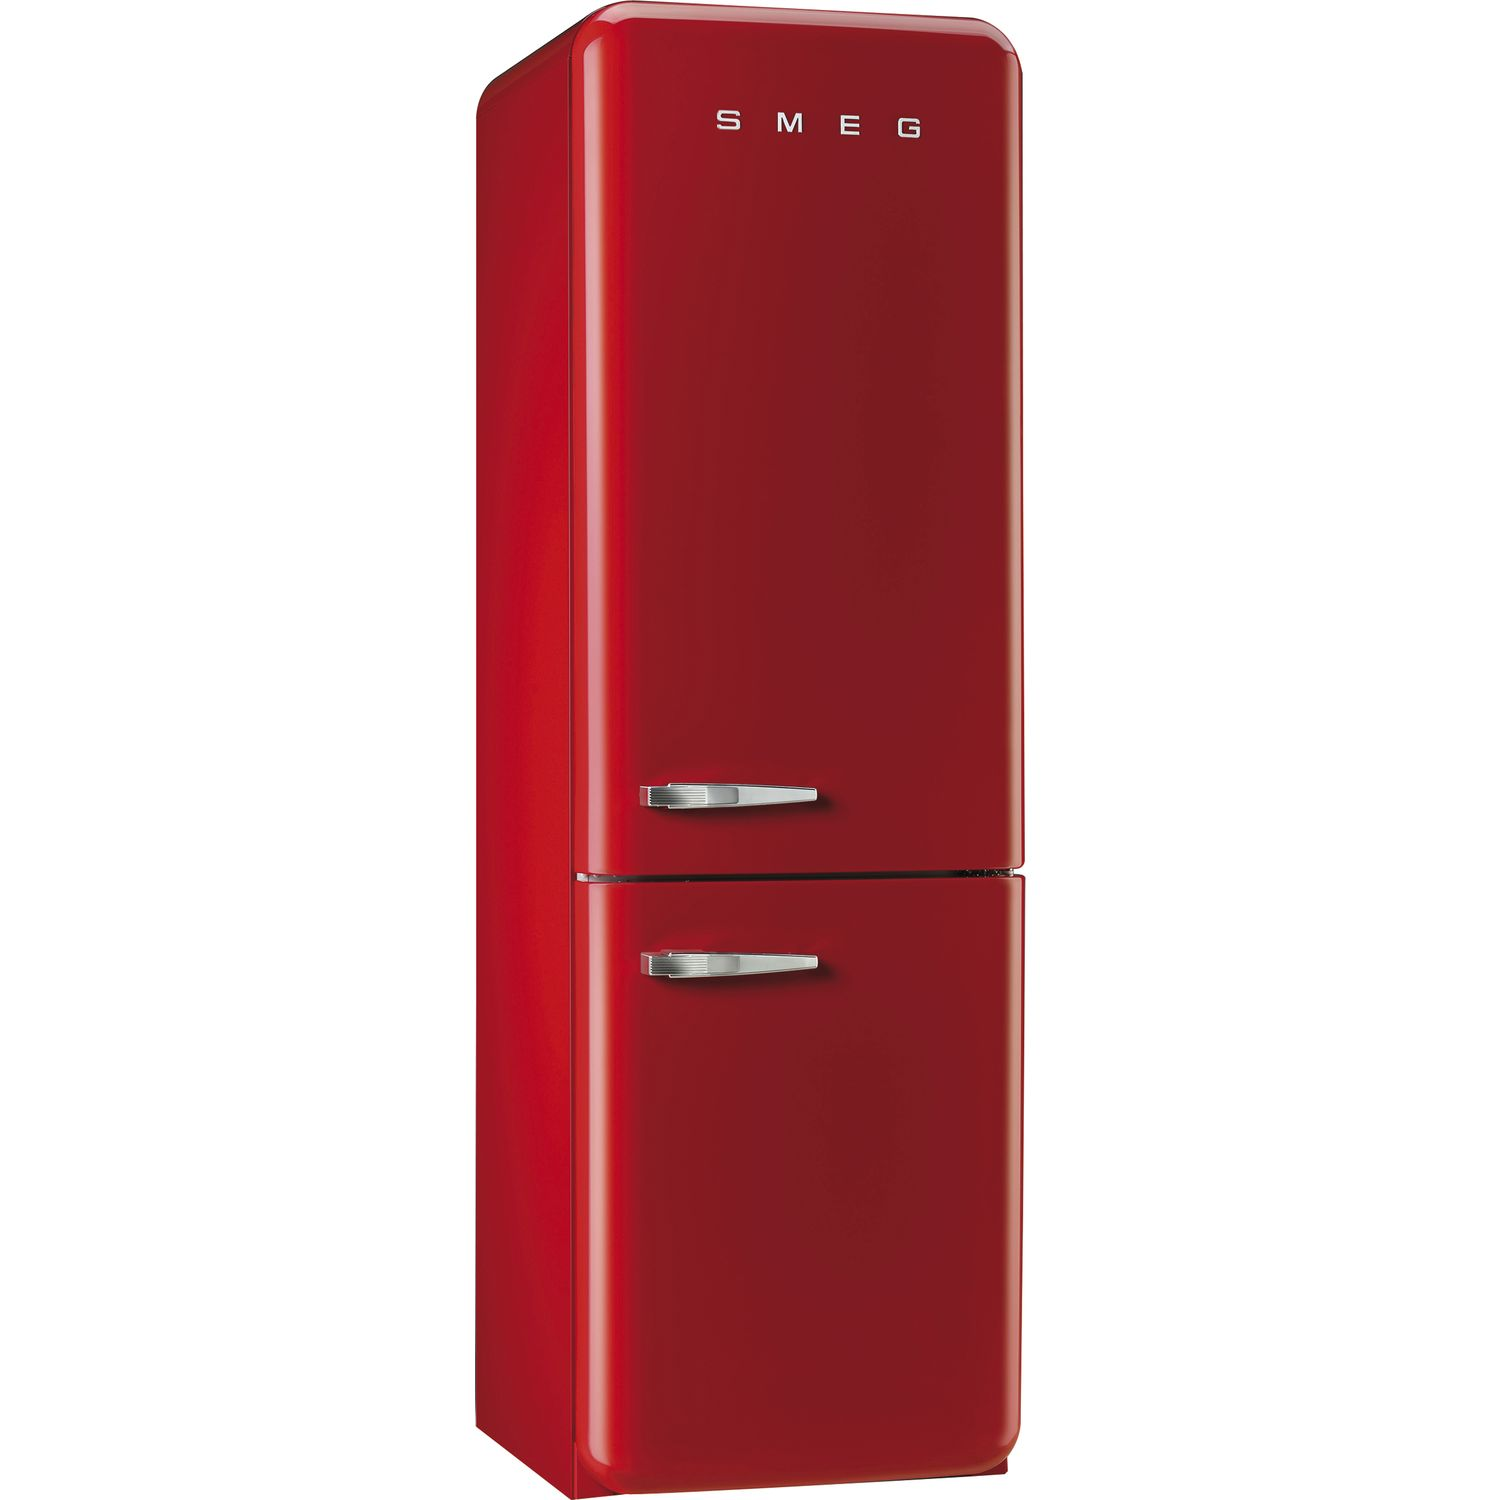 smeg stand k hl gefrierkombination fab32lrn1 nofrost a rot ta links. Black Bedroom Furniture Sets. Home Design Ideas